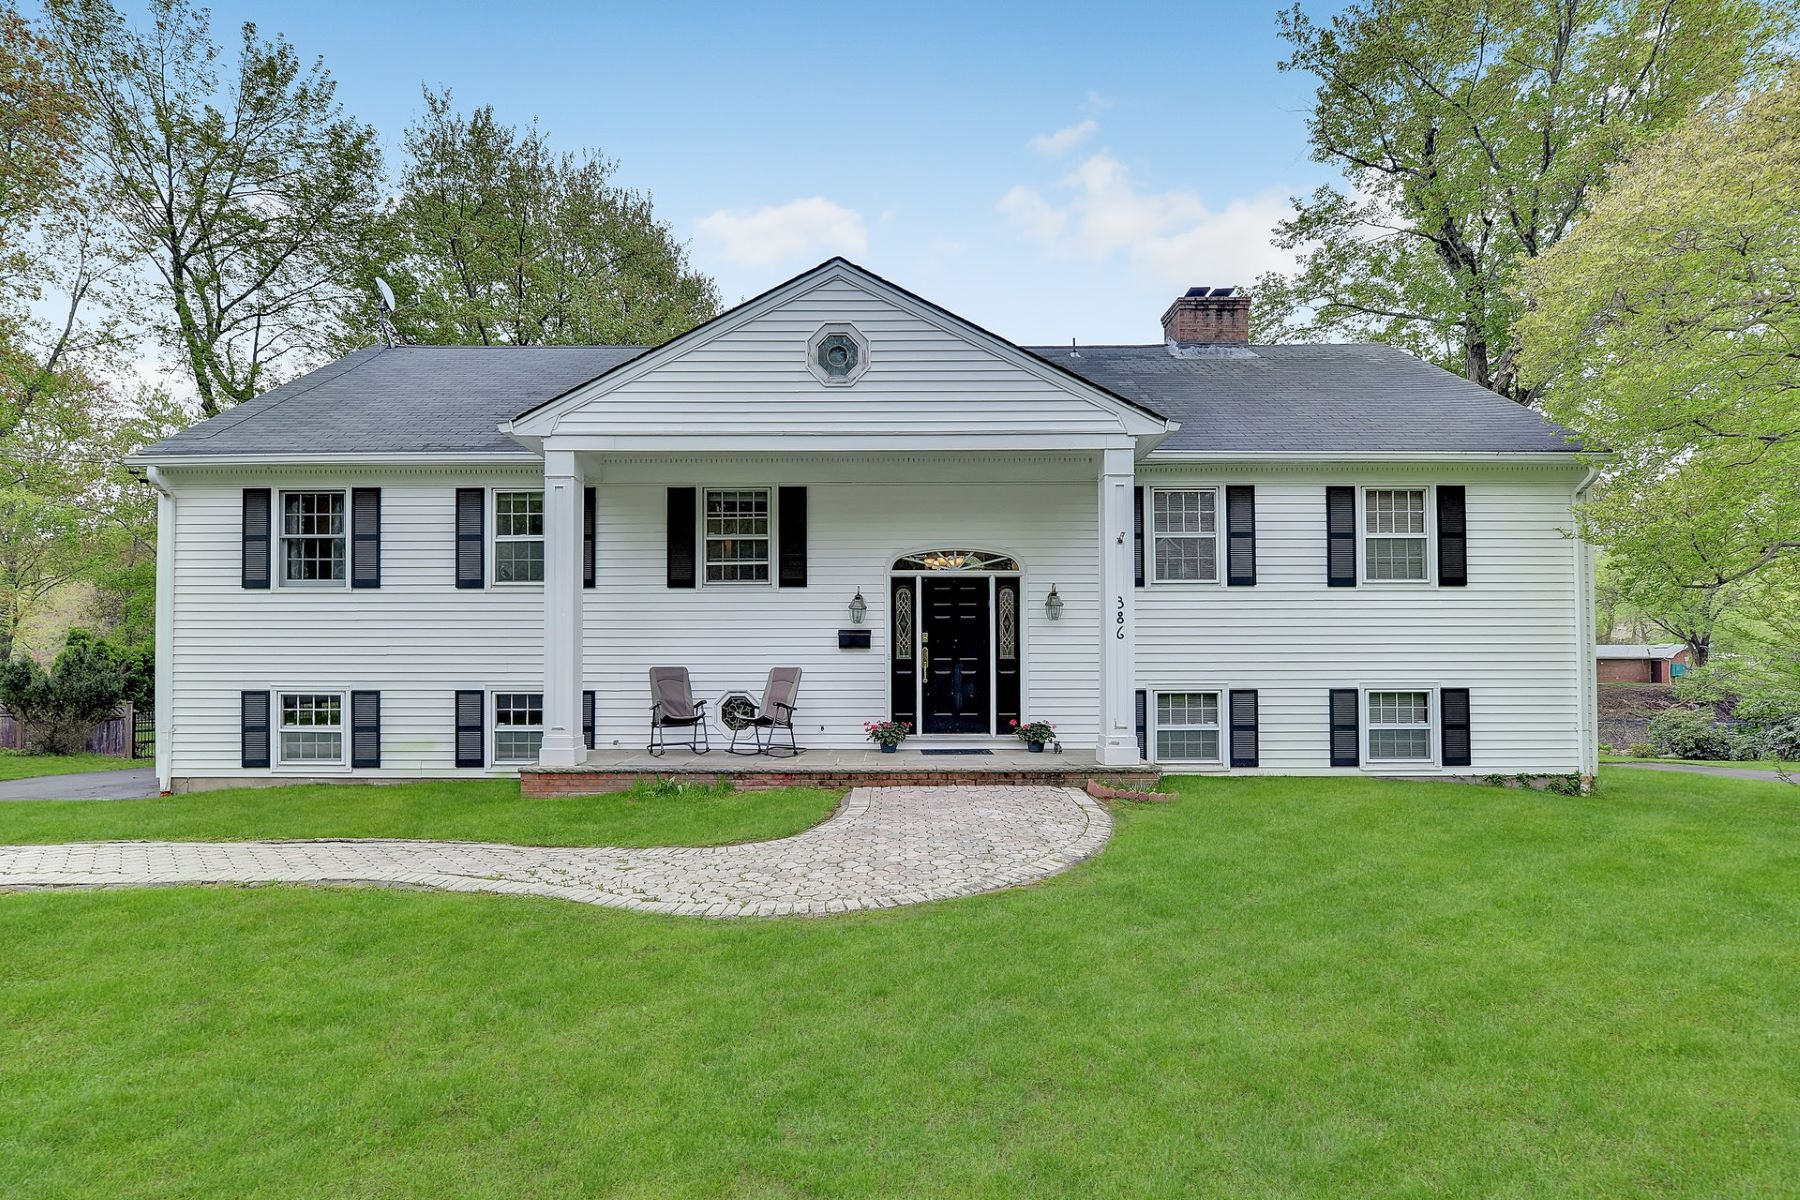 Single Family Homes for Sale at Incredibly spacious 4900+sf 5brs 3.5 baths home on picturesque Rambaut Lake. 386 W Shore Dr Wyckoff, New Jersey 07481 United States